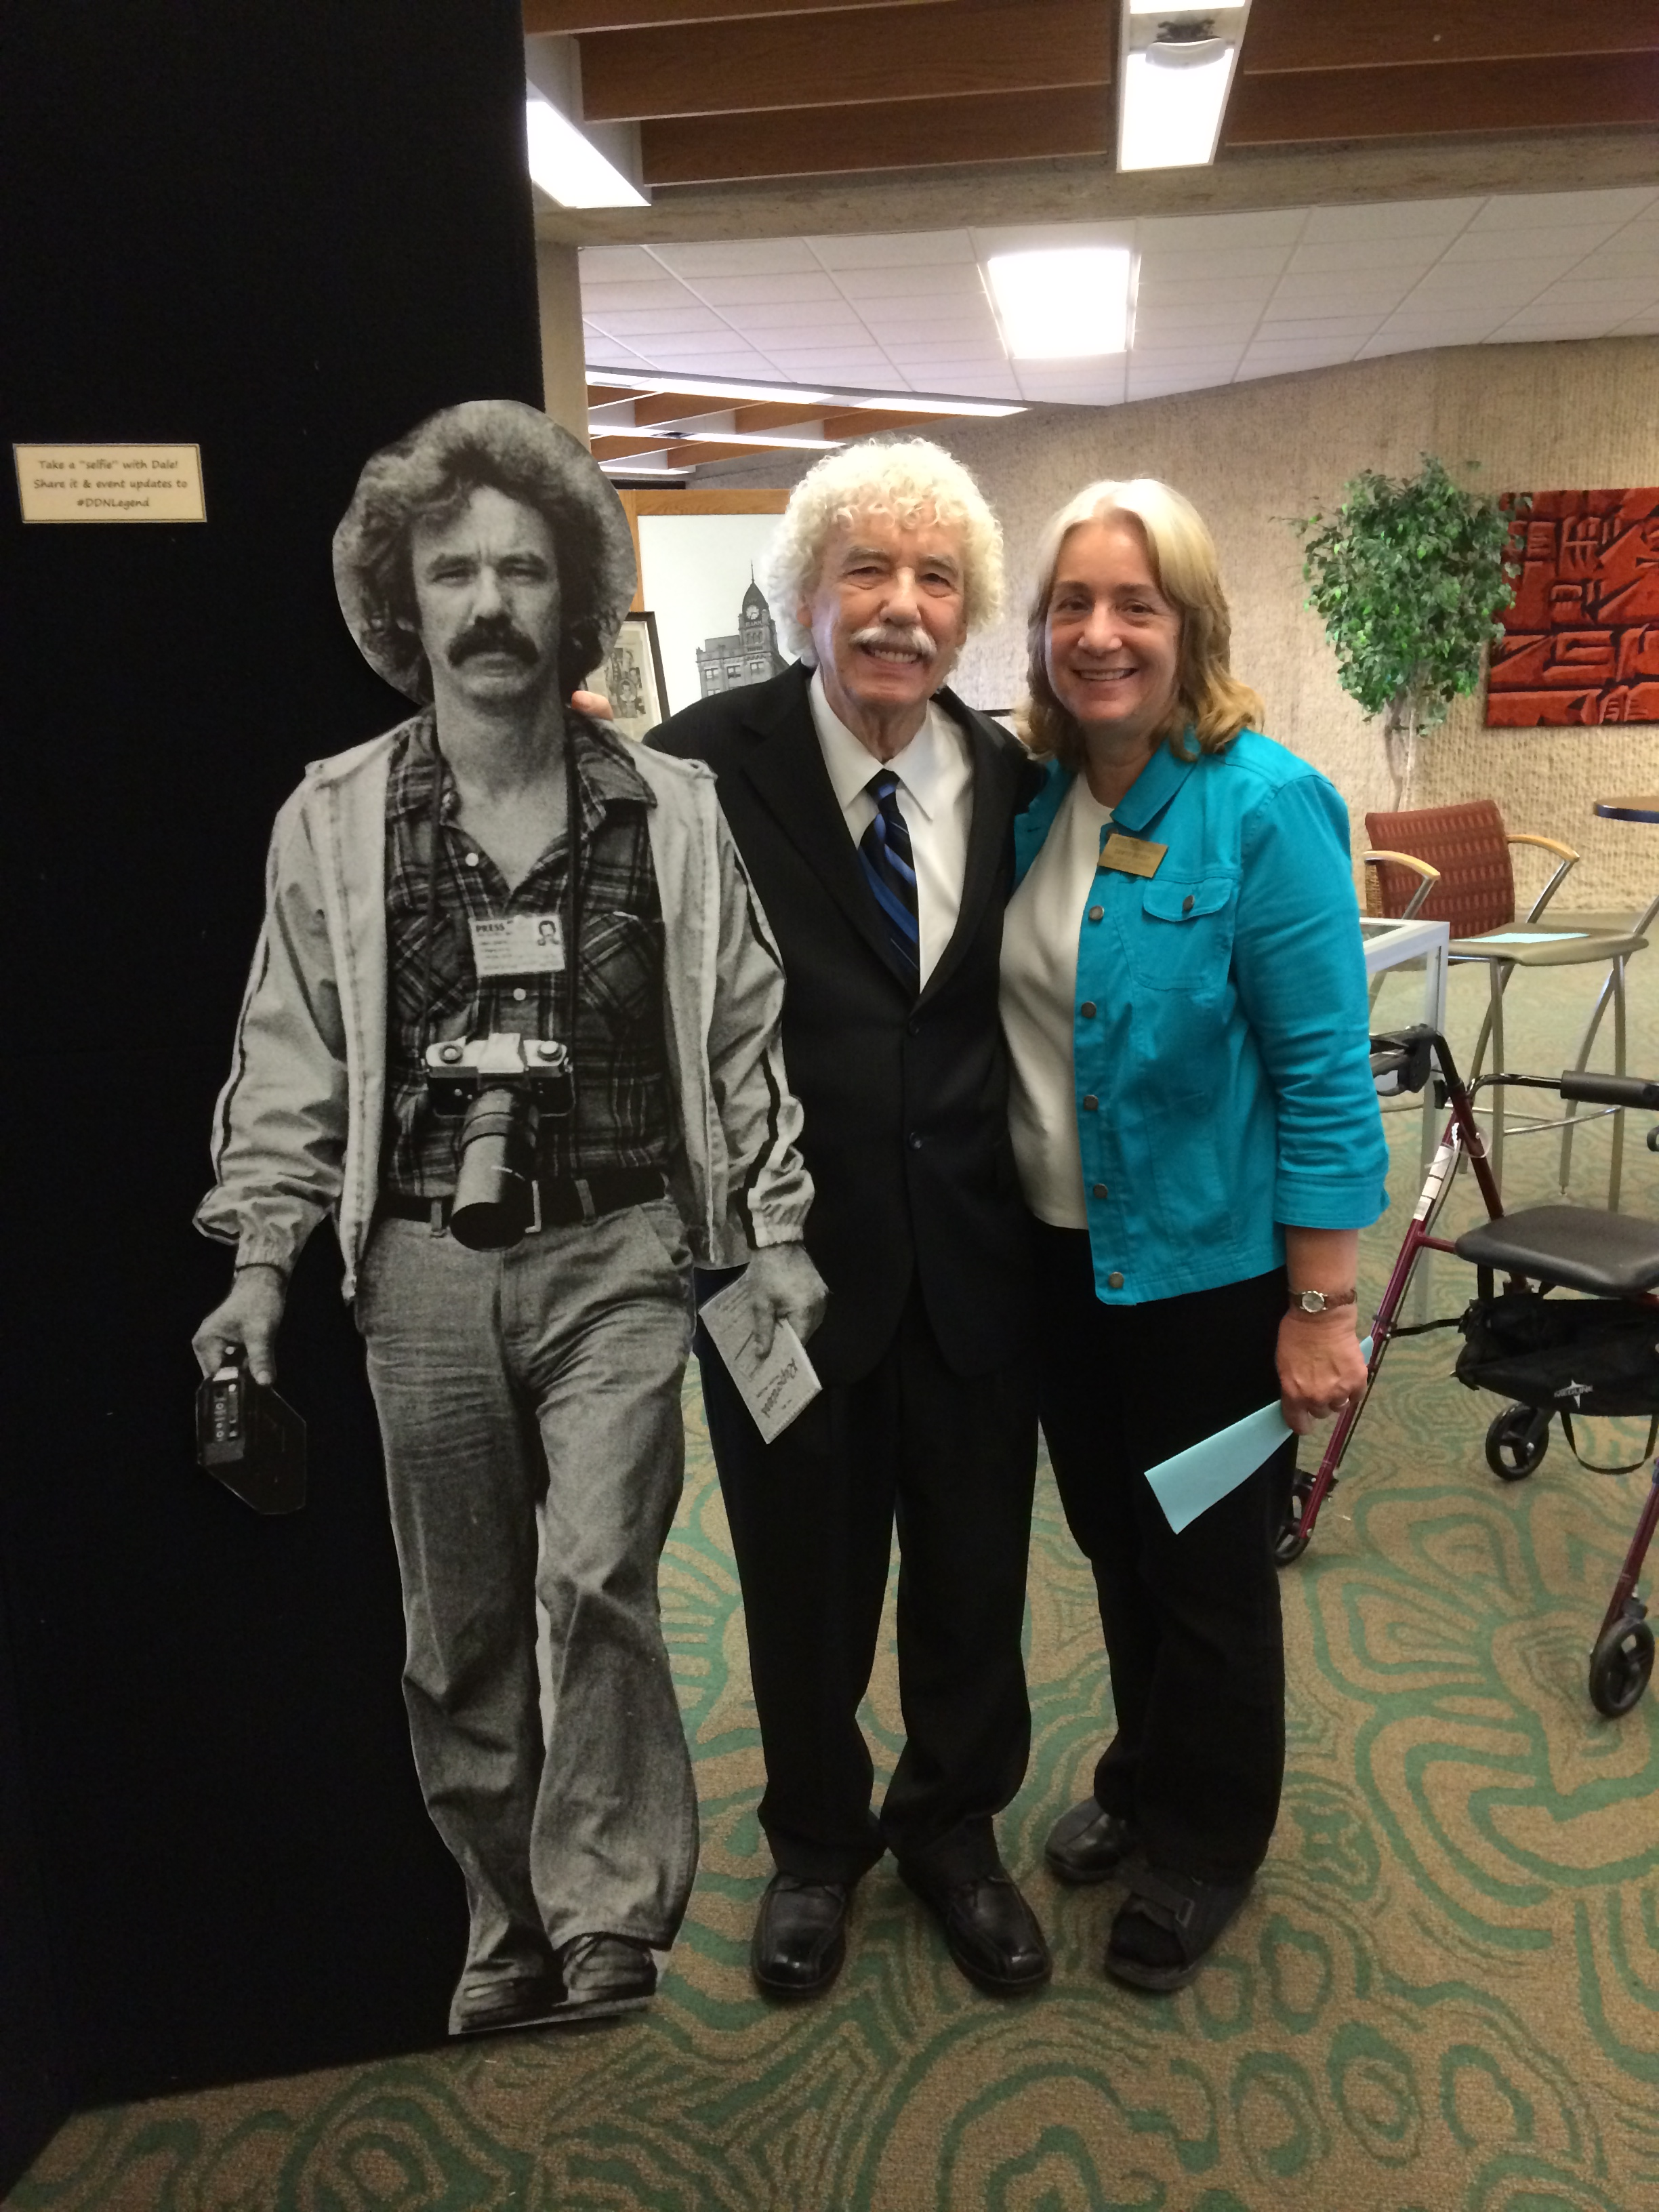 Dale and Dawne with the life-size cutout